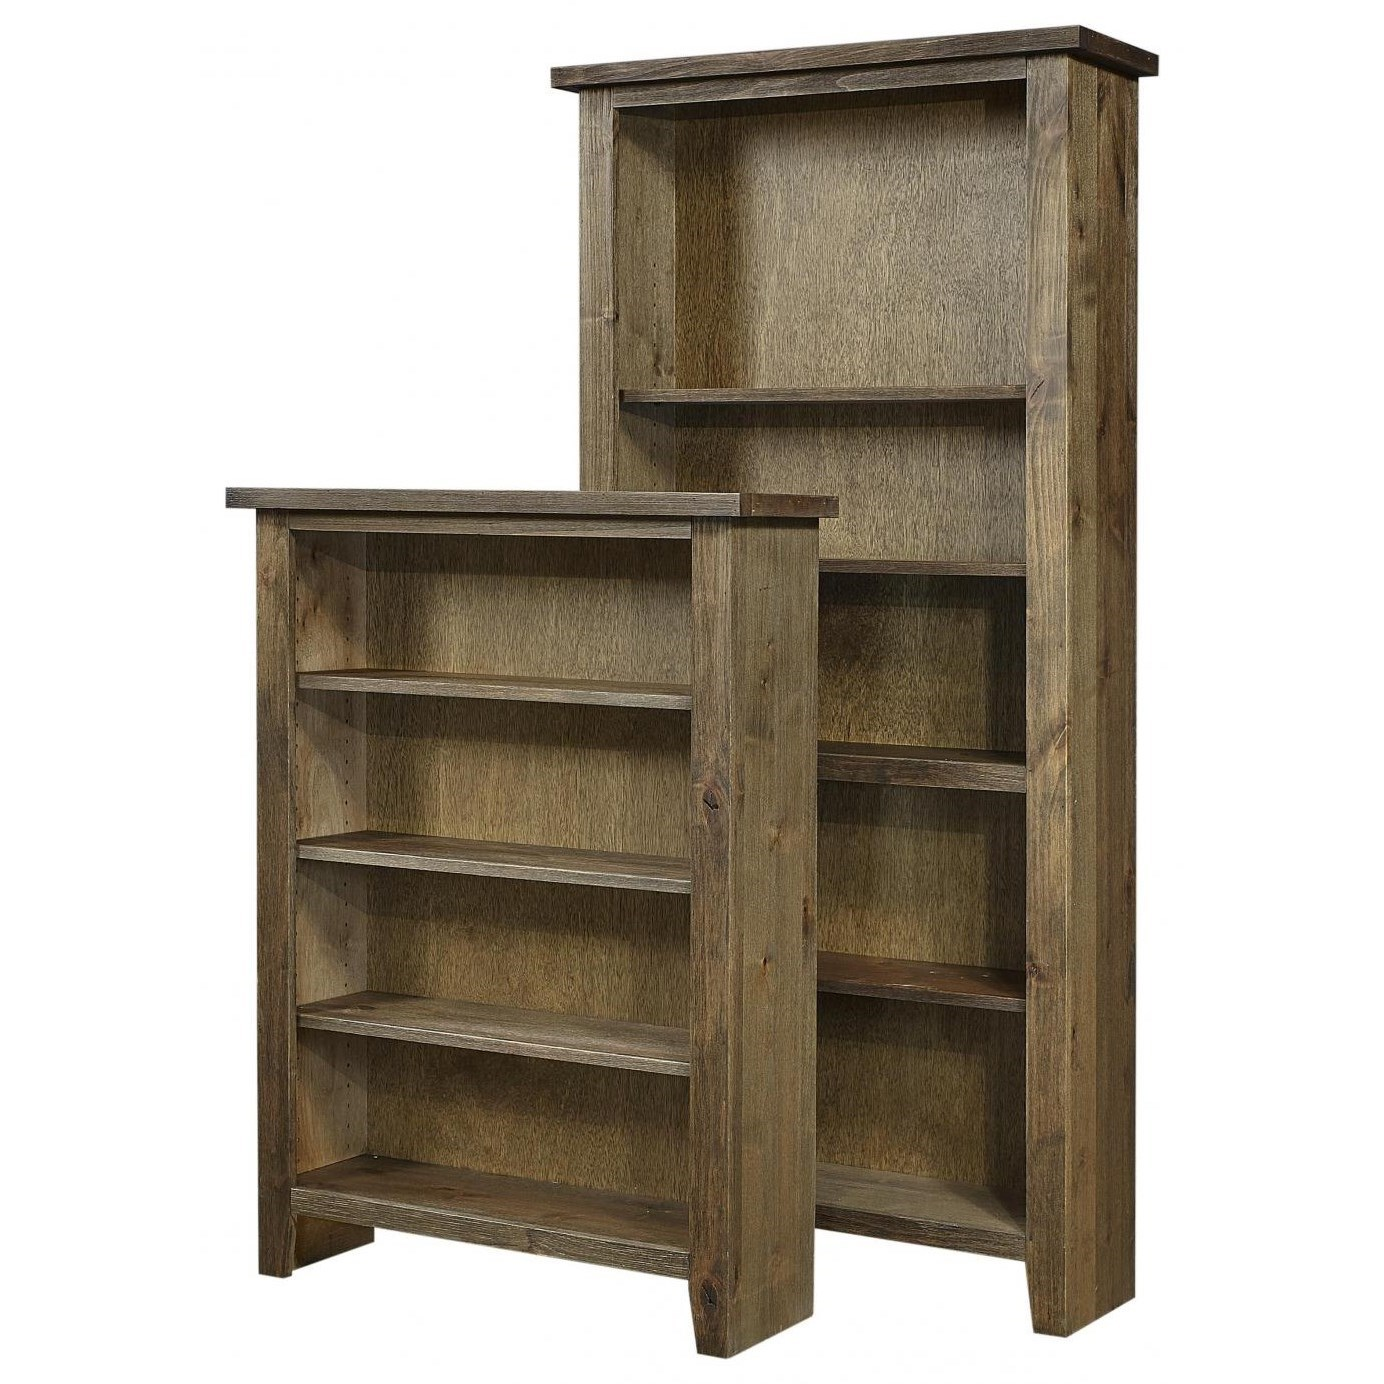 "Alder Grove Bookcase 60"" Height with 3 Shelves by Aspenhome at Mueller Furniture"